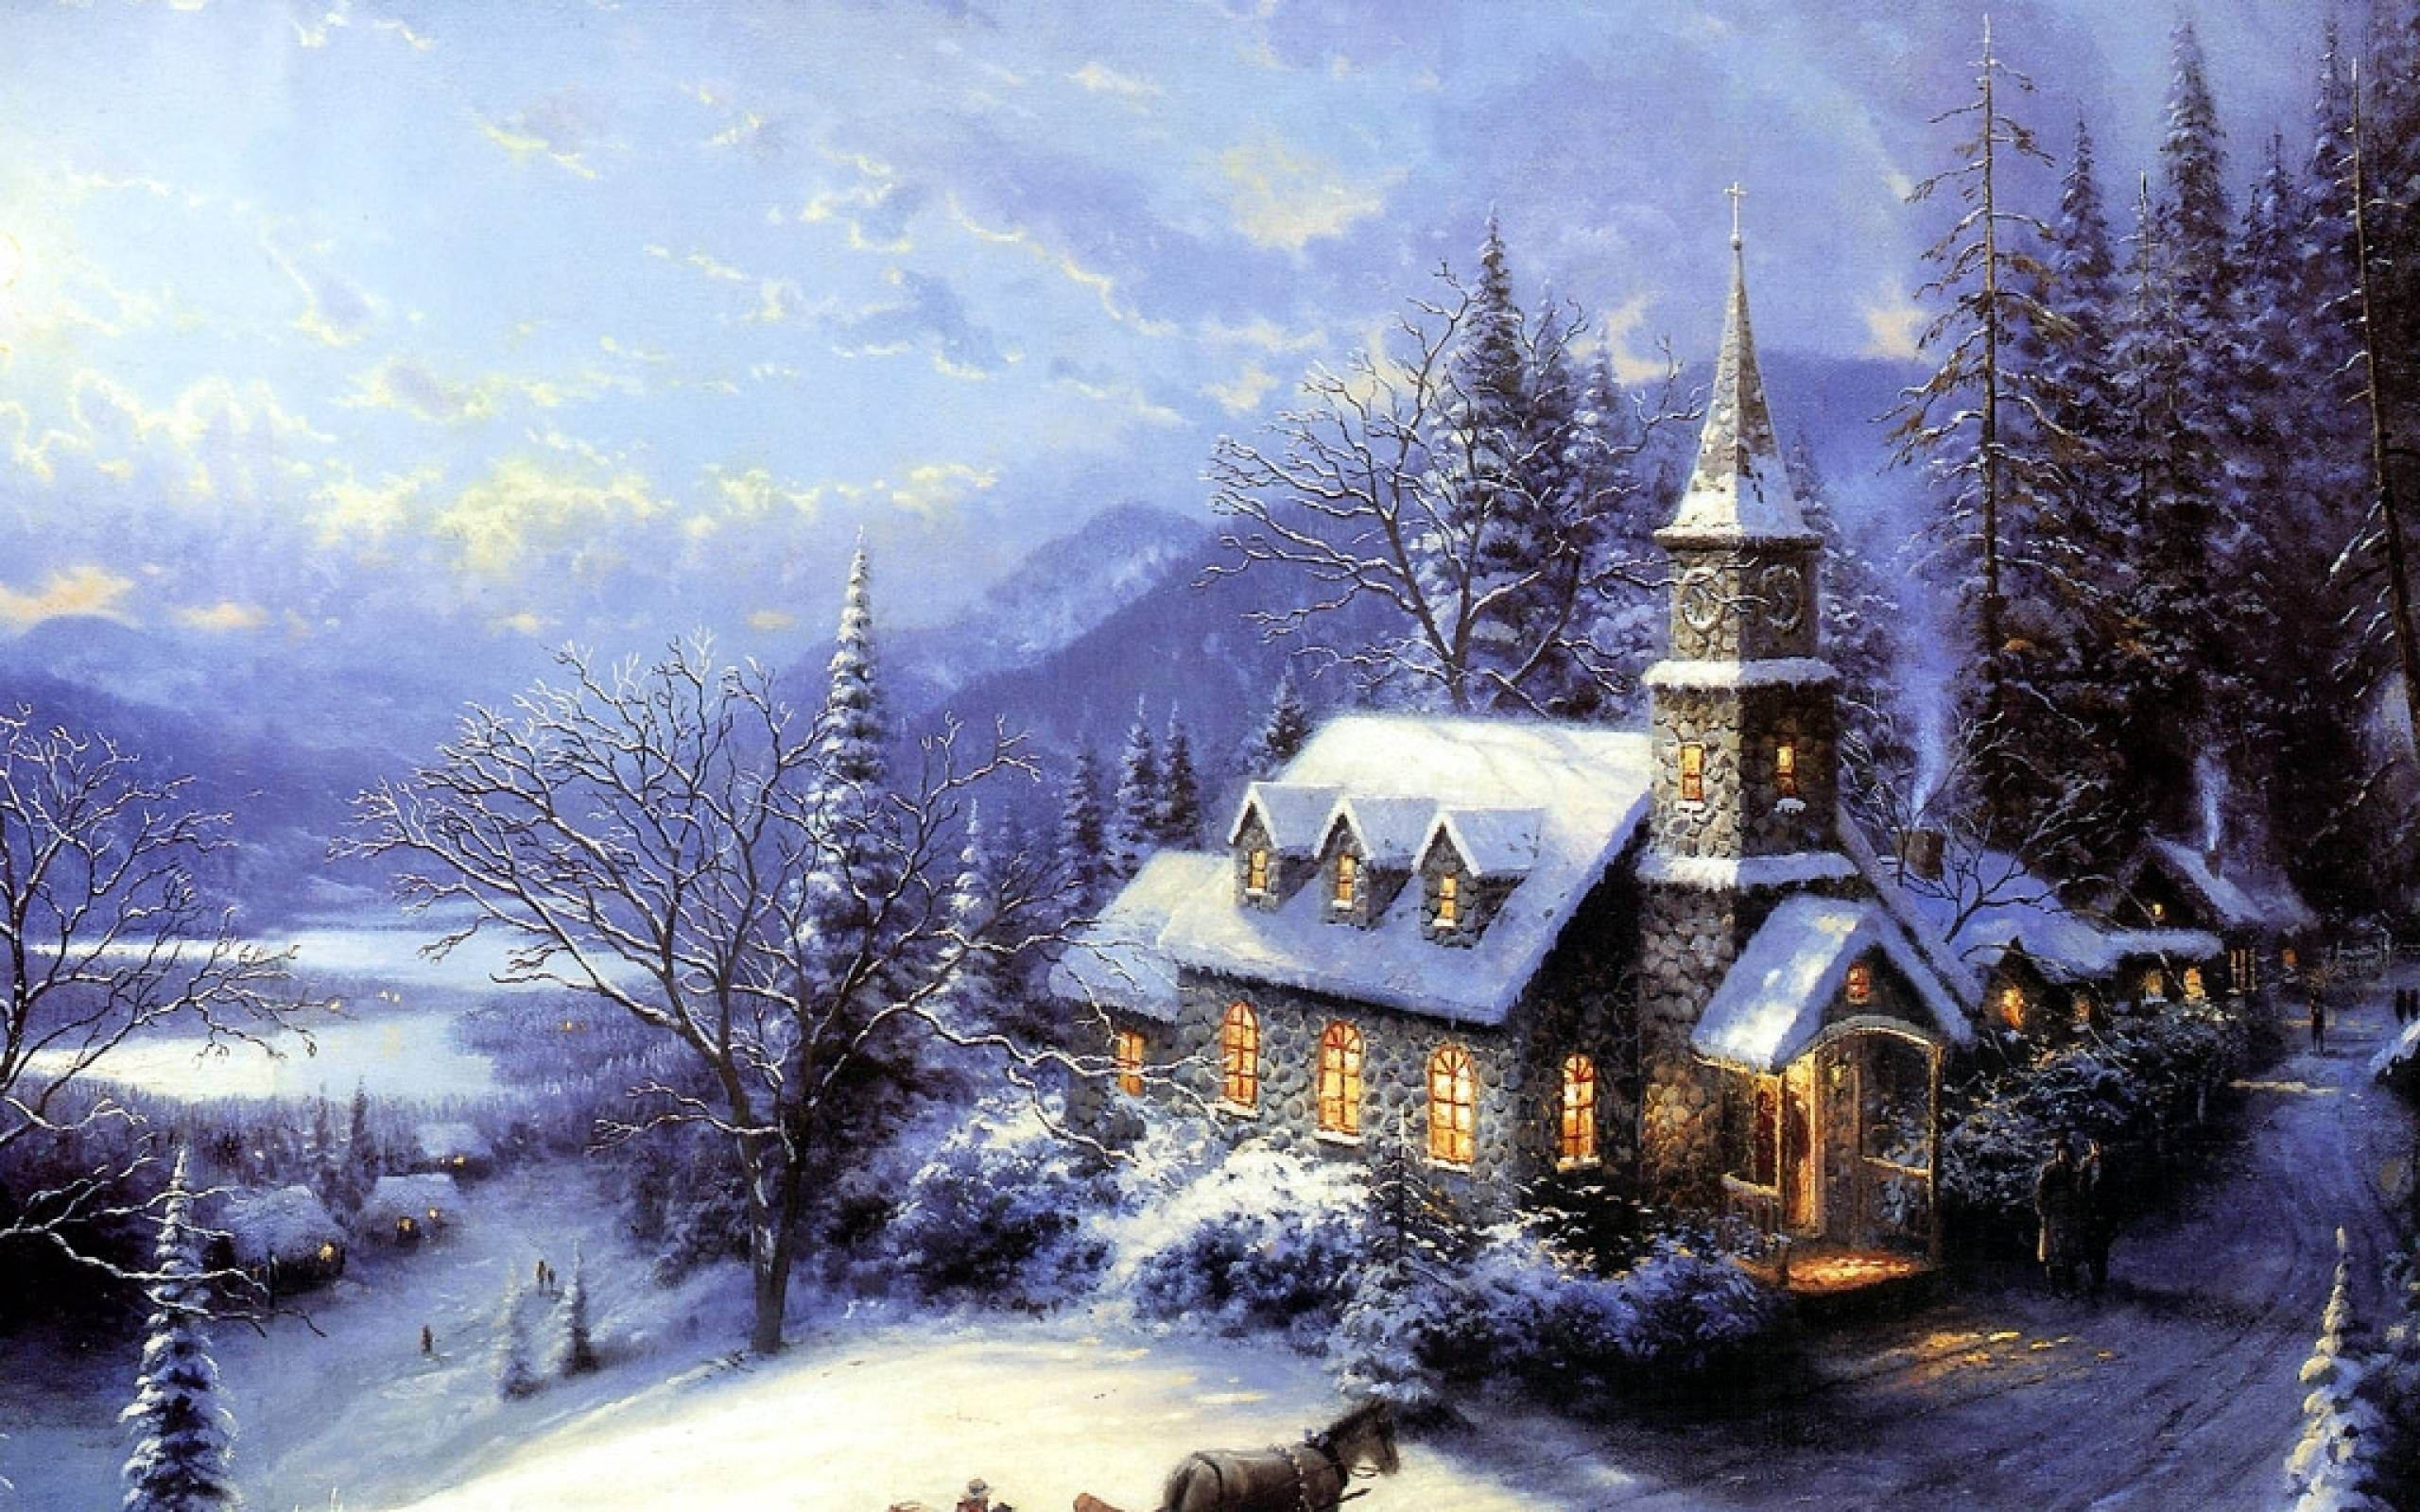 Thomas Kinkade Christmas Backgrounds Wallpaper Cave Thomas Kinkade Paintings Thomas Kinkade Art Thomas Kinkade